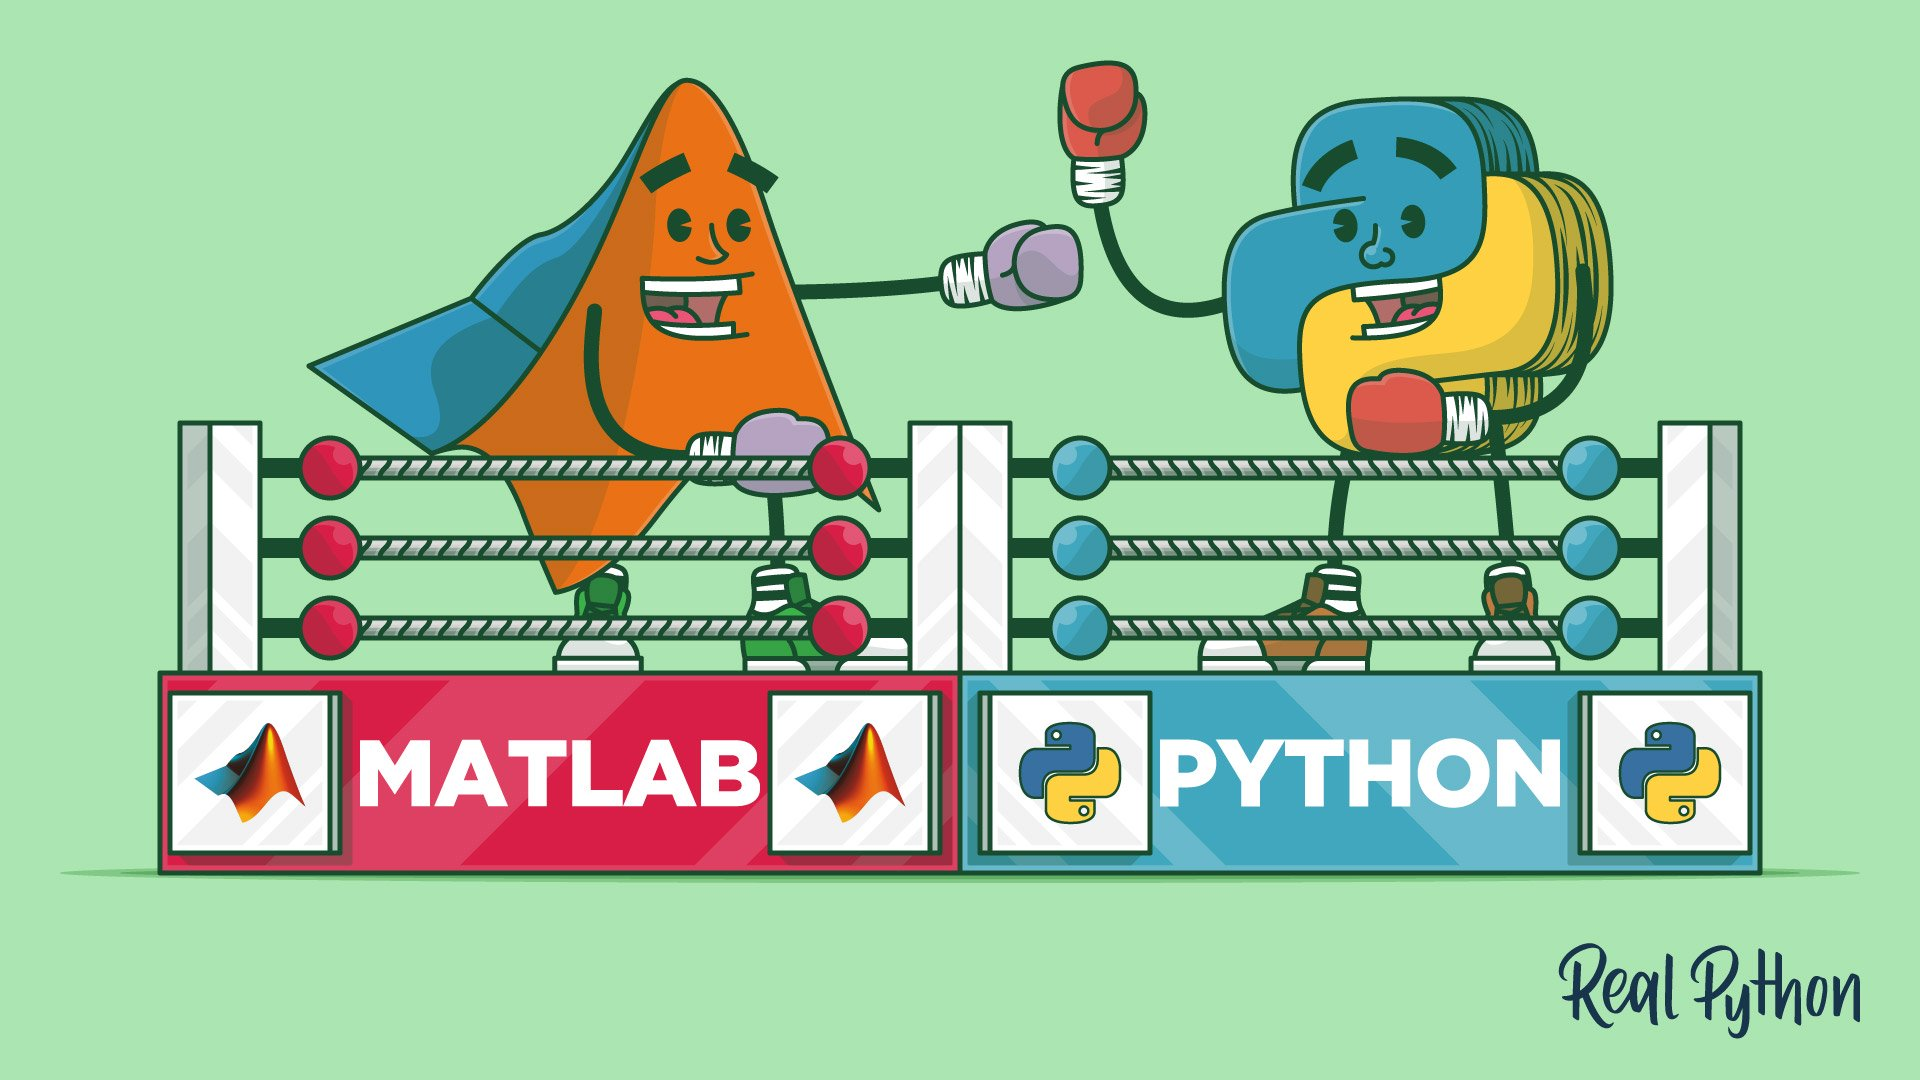 MATLAB vs Python: Why and How to Make the Switch.